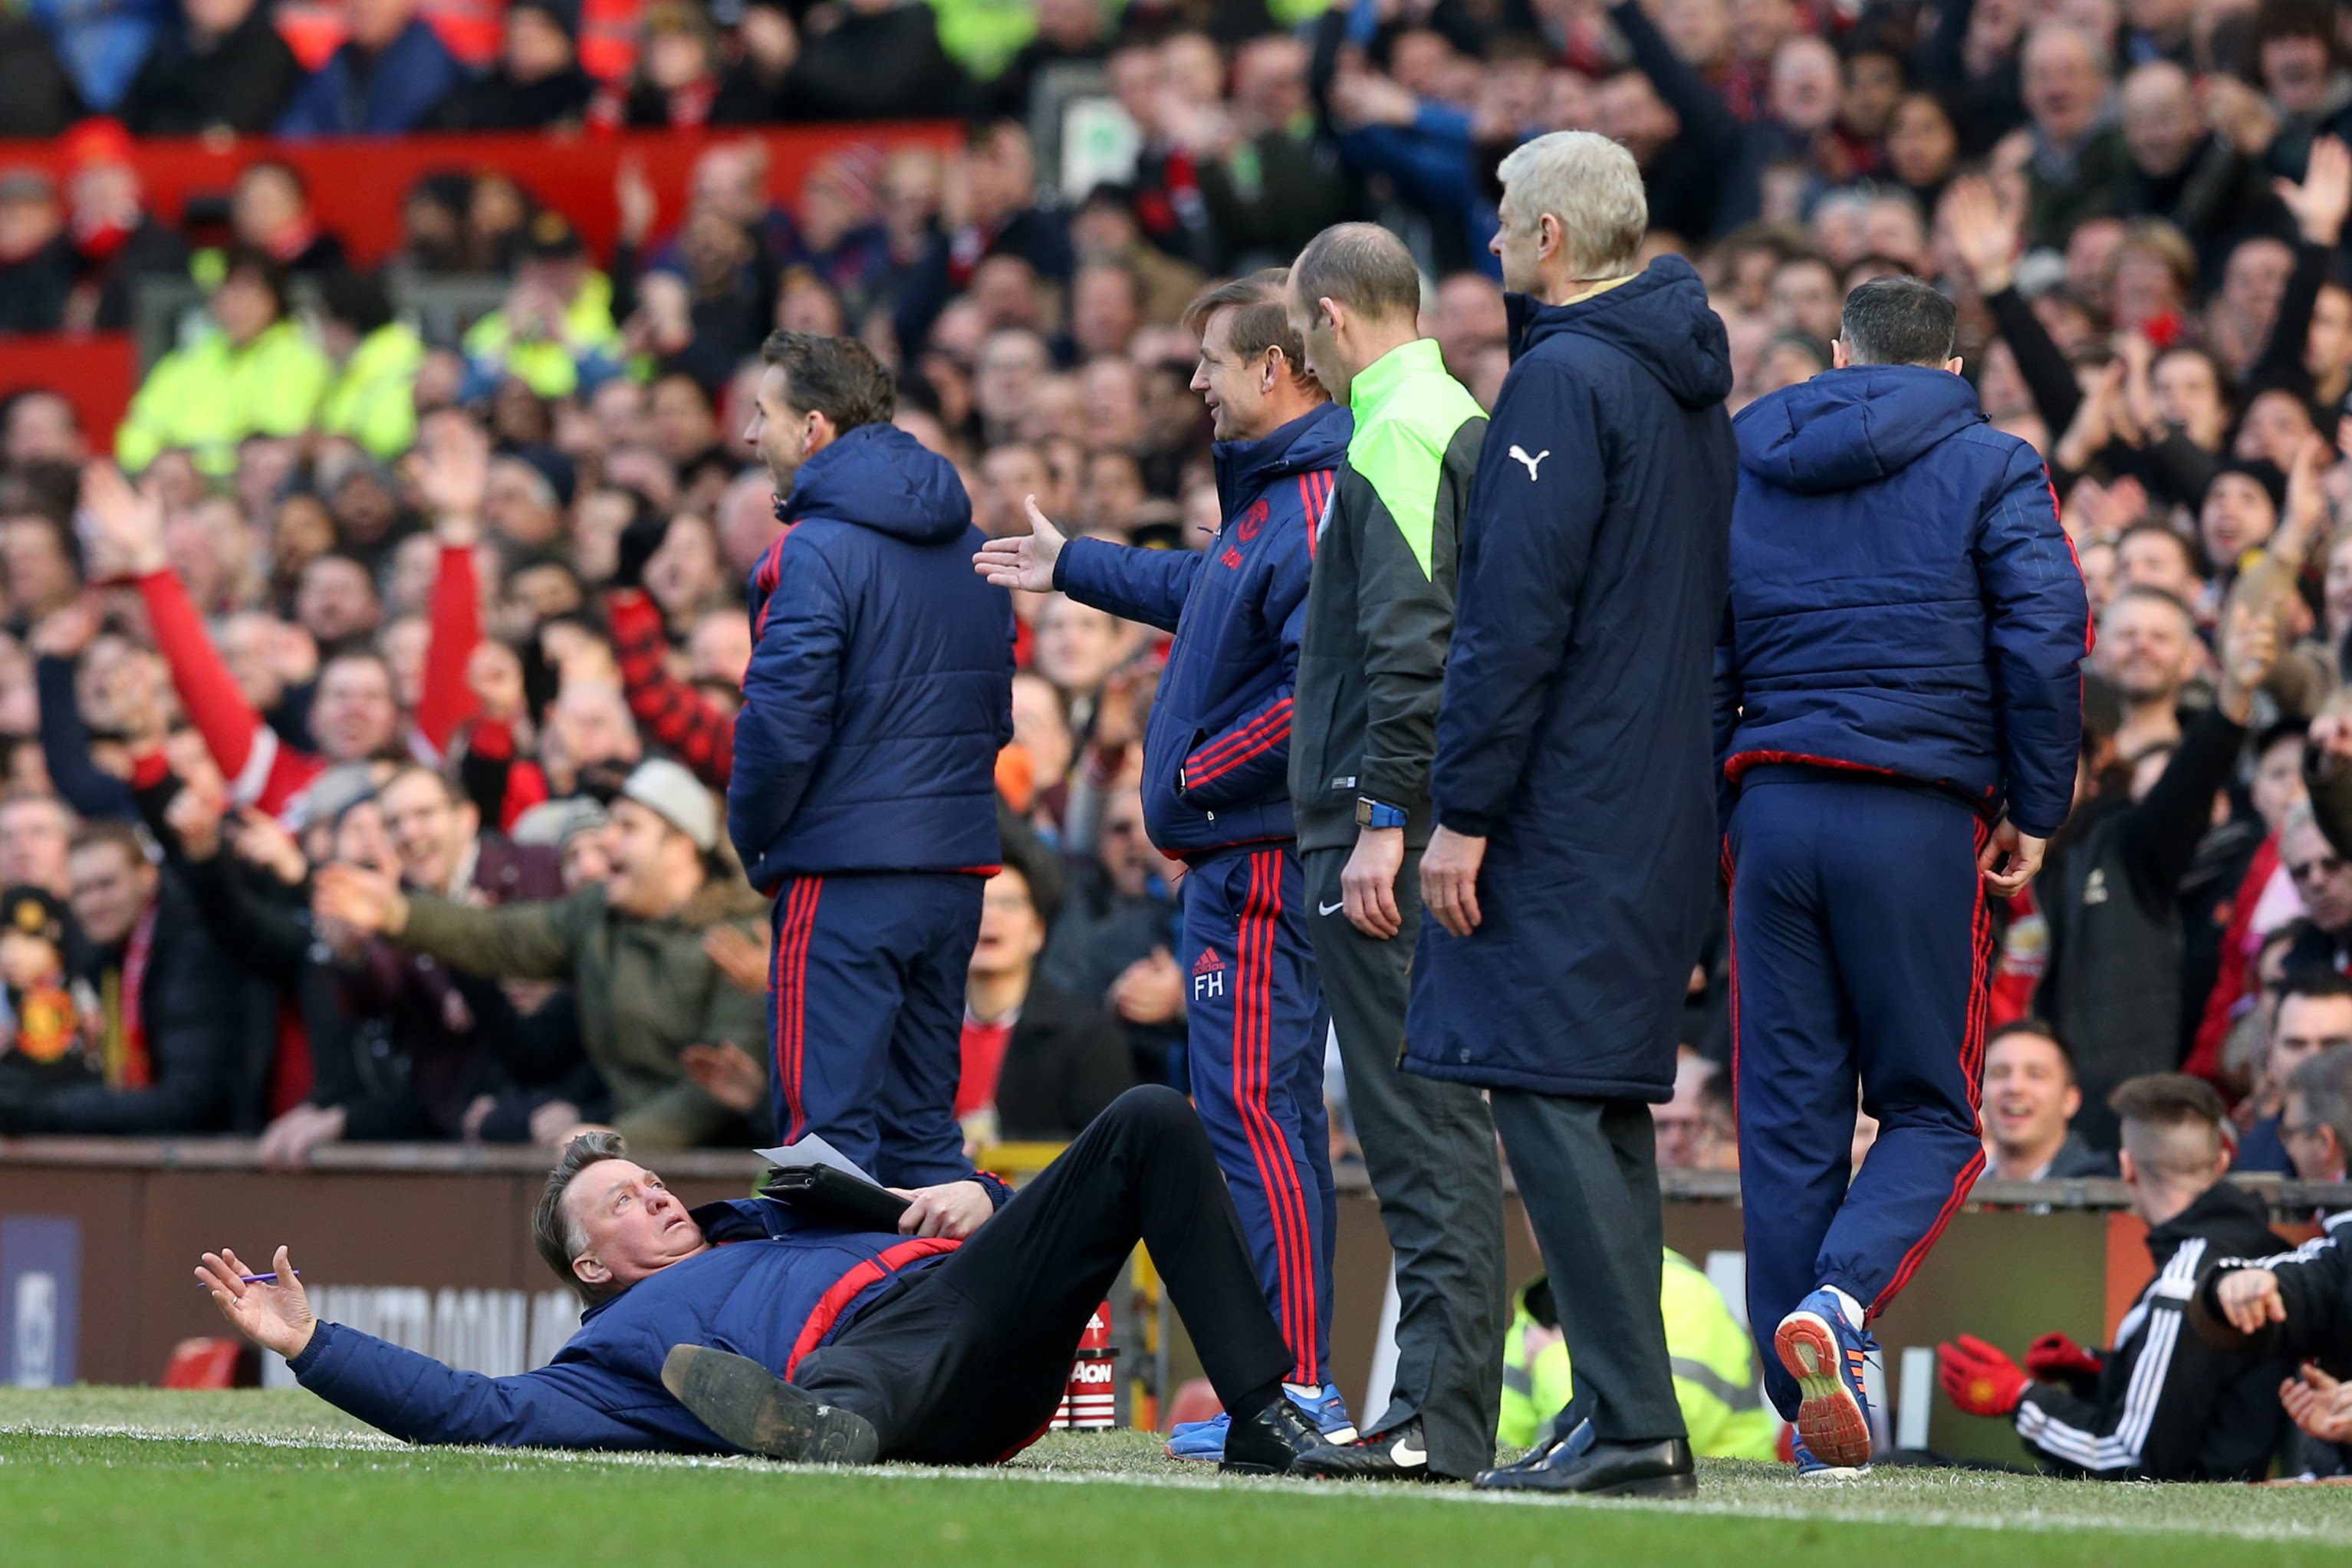 VIDEO: Louis van Gaal Dive: The Best Memes